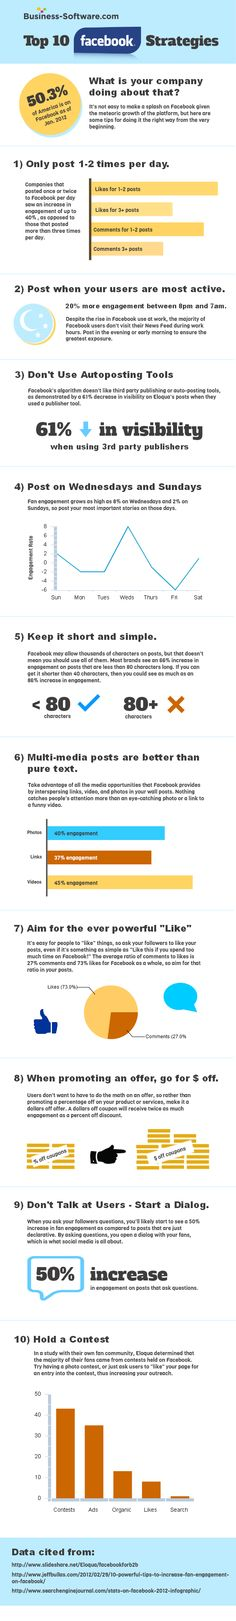 Top 10 Facebook Strategies Infographic - September 25th, 2012